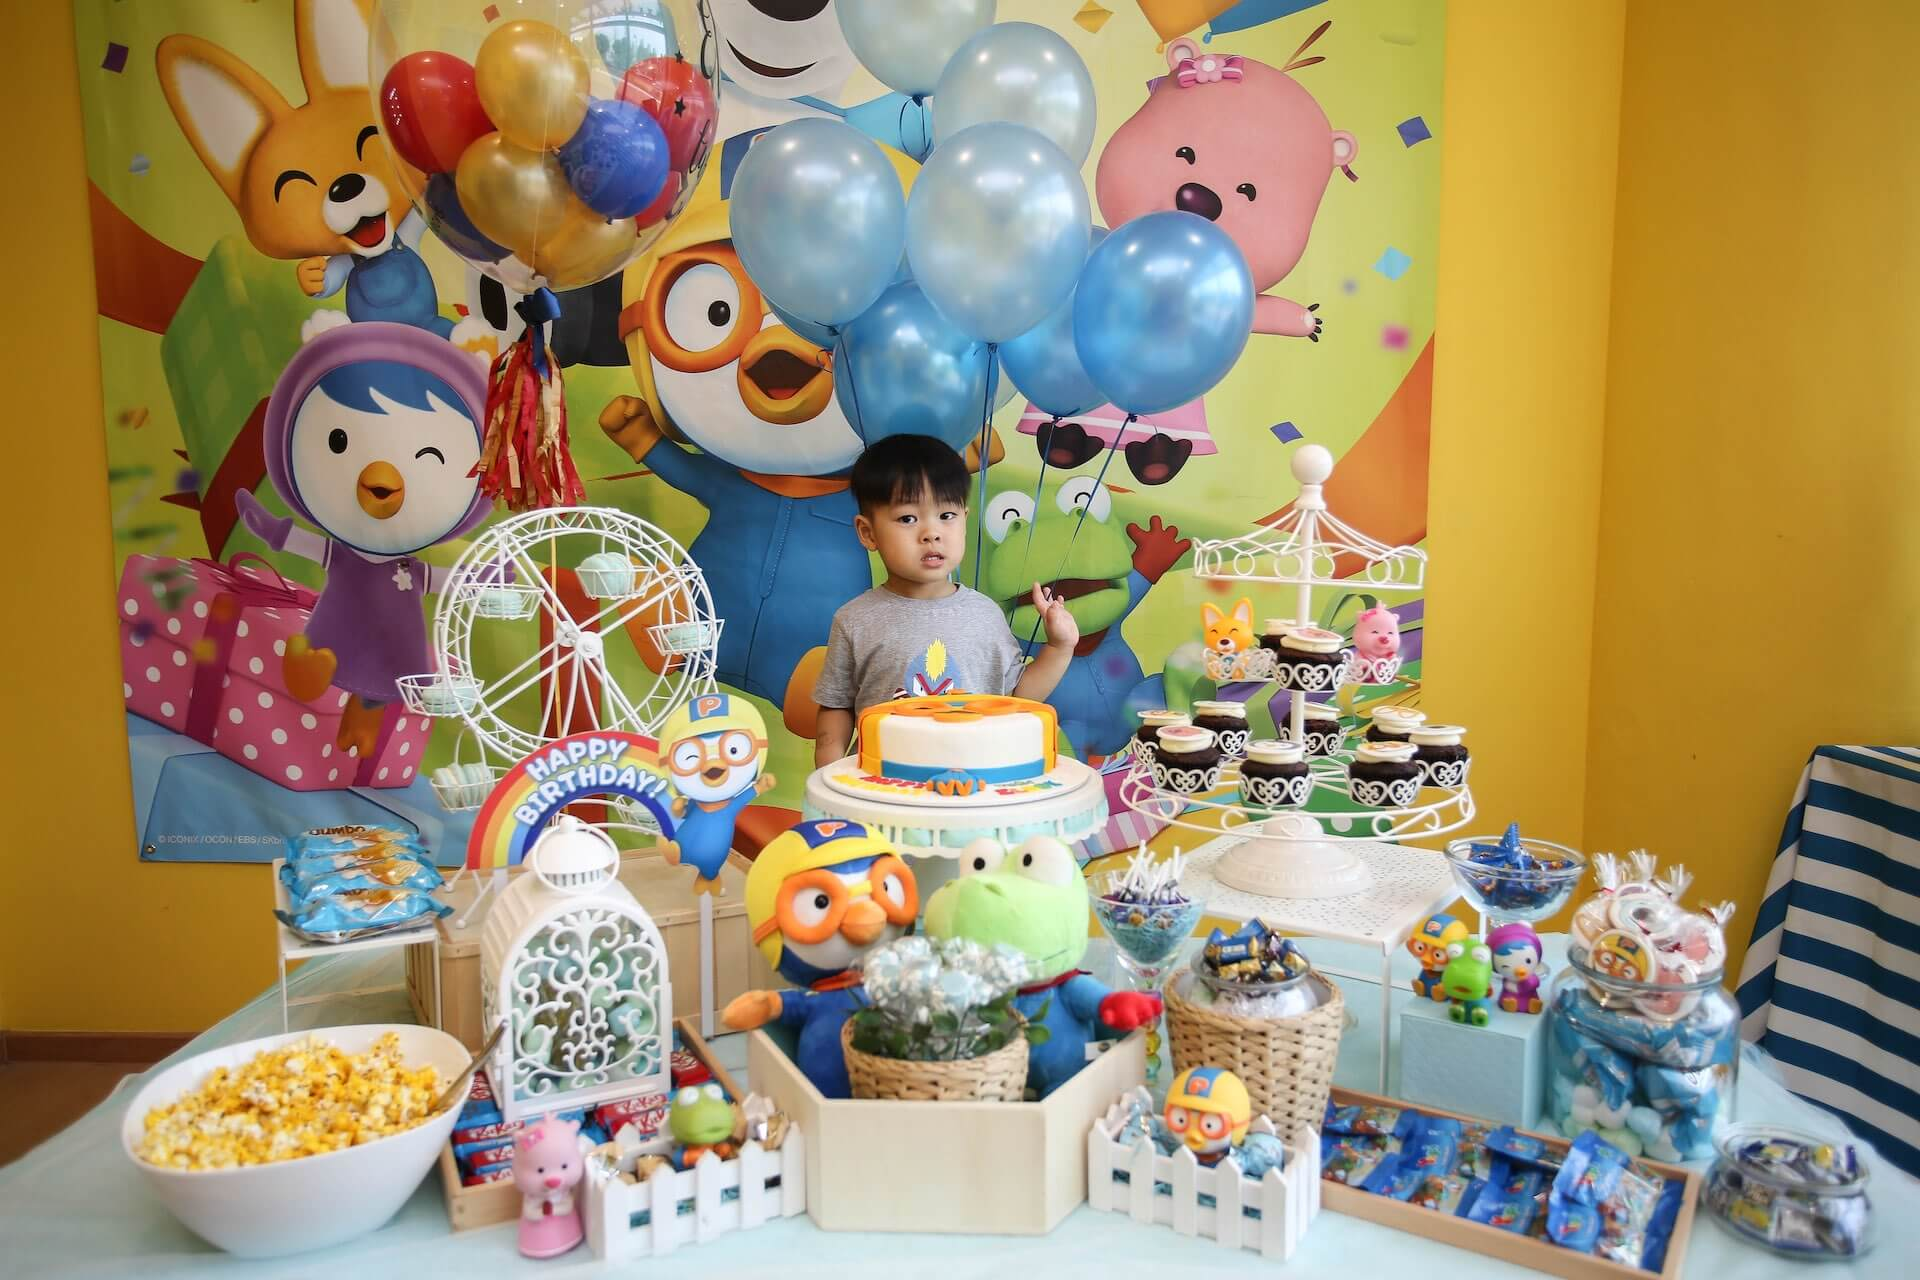 Birthday Party Add-Ons - Dessert Table | Pororo Park Singapore